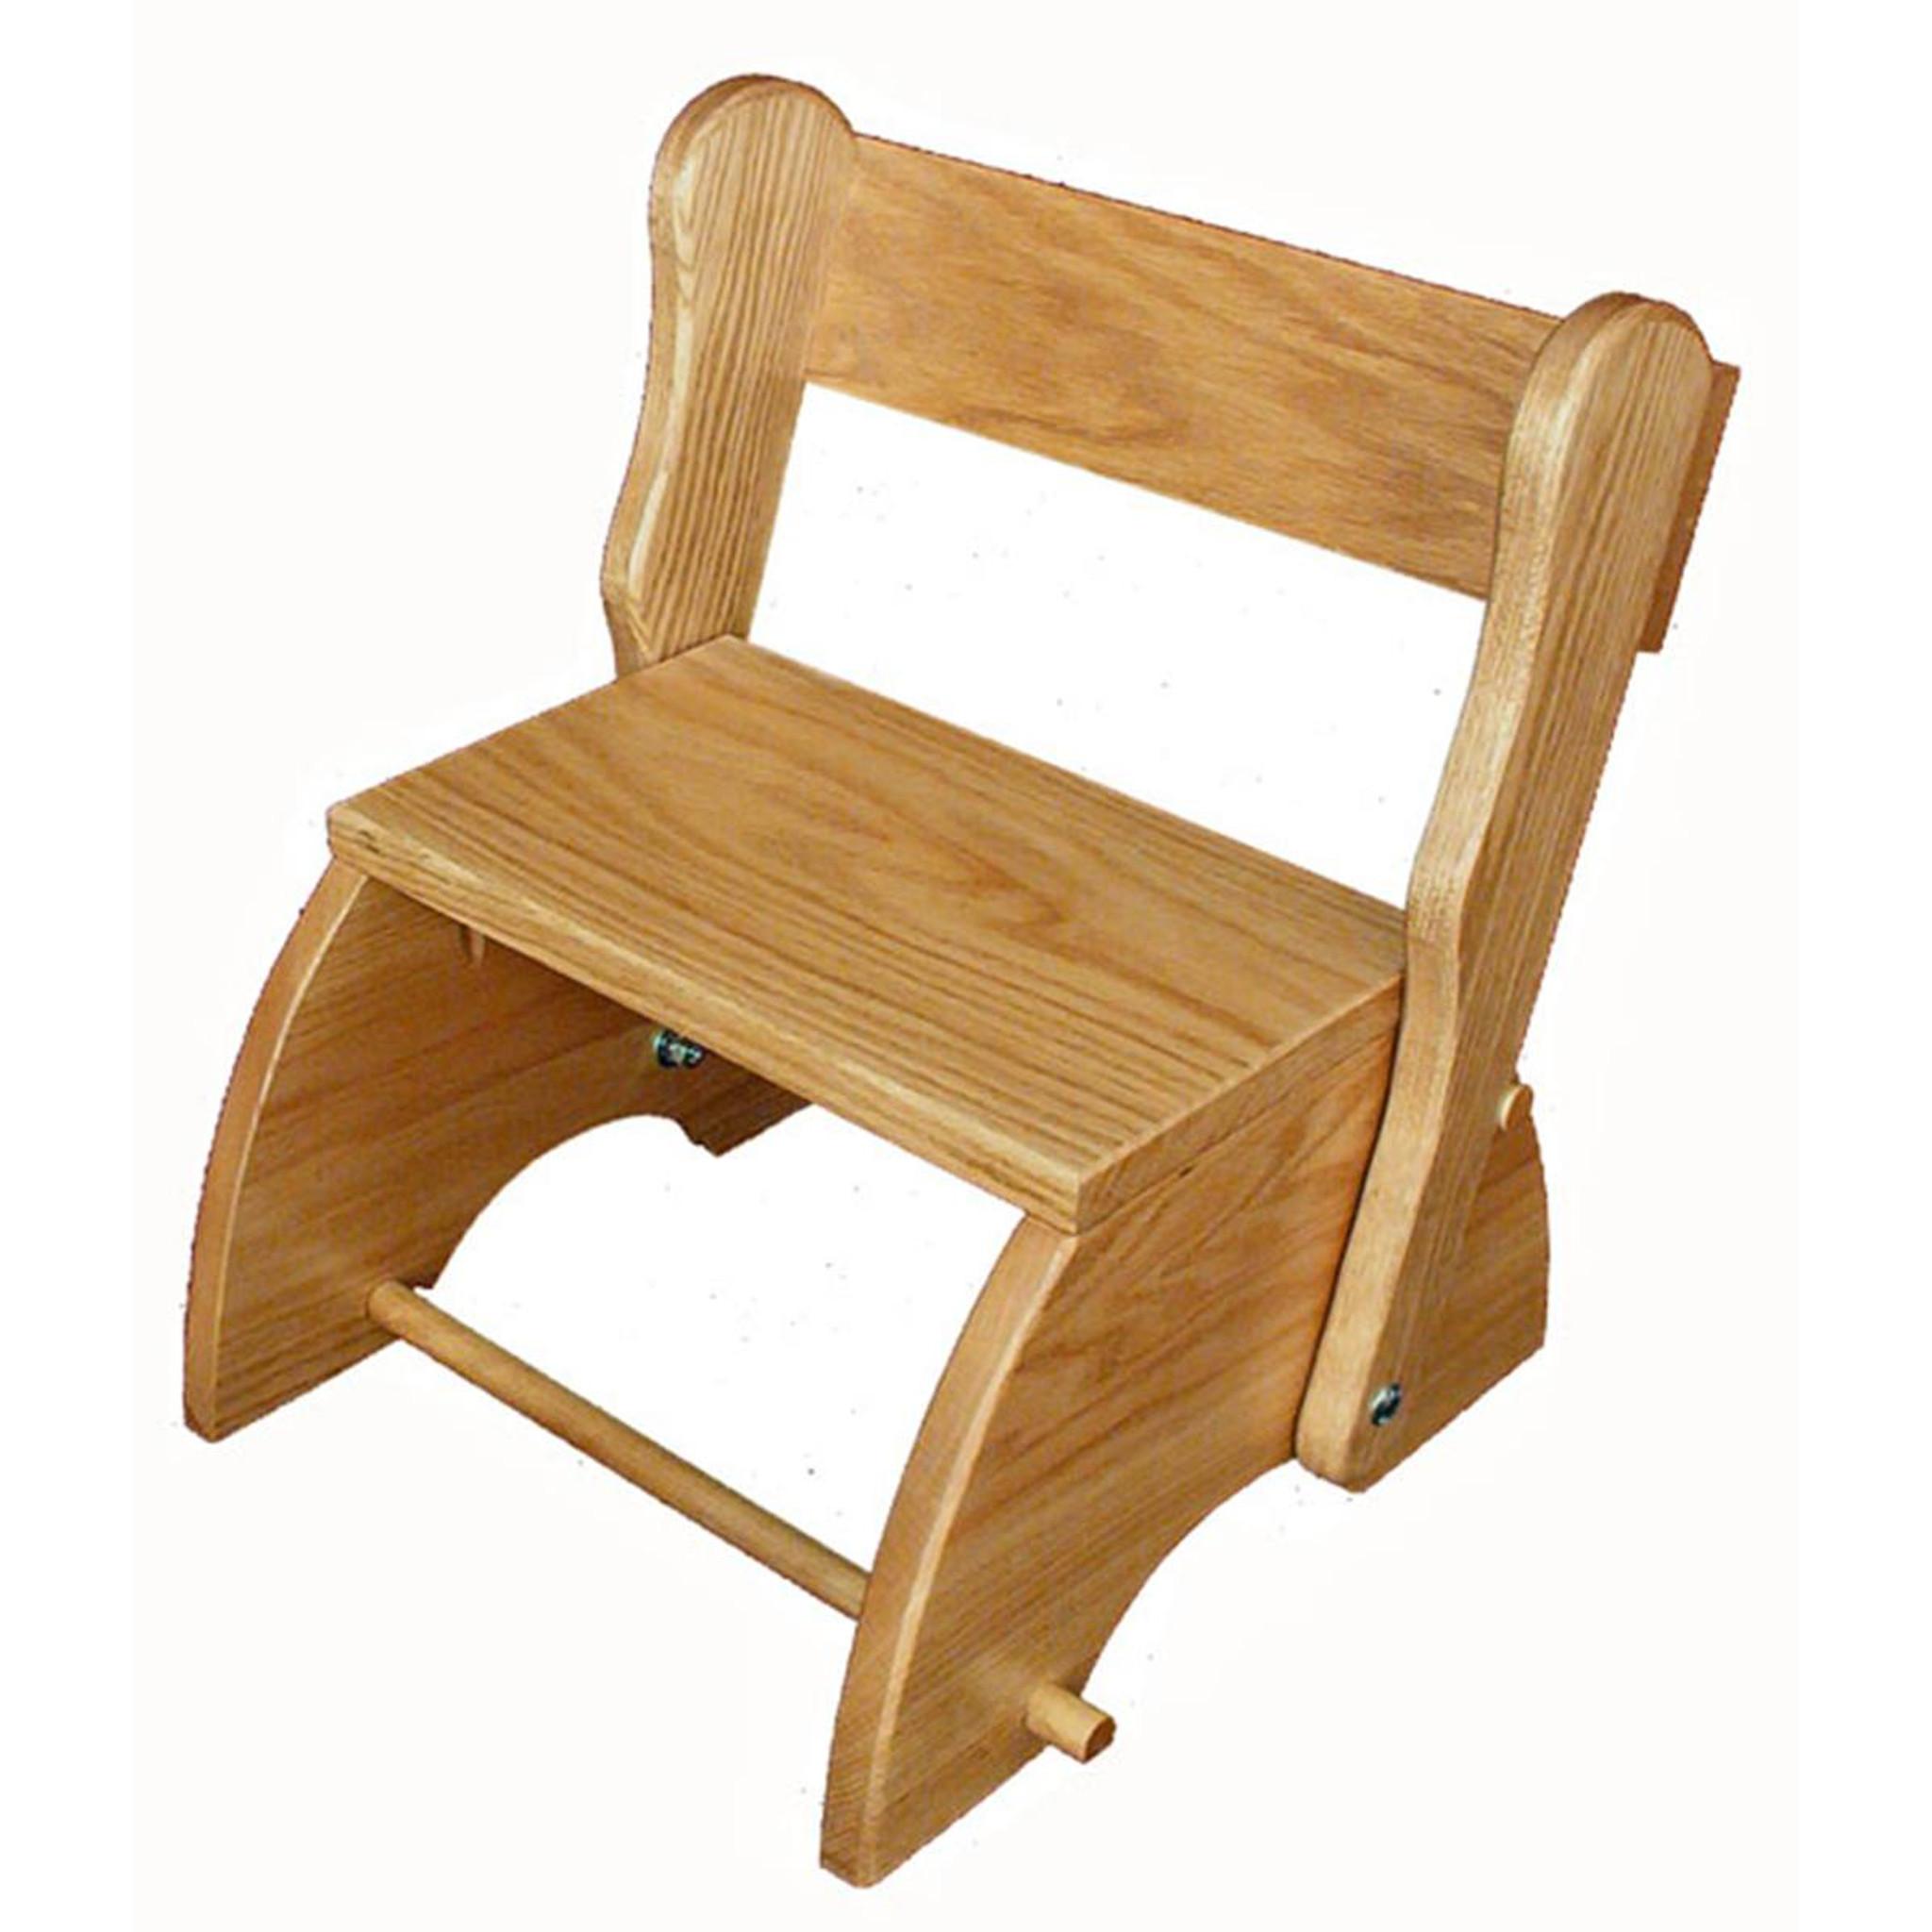 Enjoyable Childs Folding Step Stool Ocoug Best Dining Table And Chair Ideas Images Ocougorg